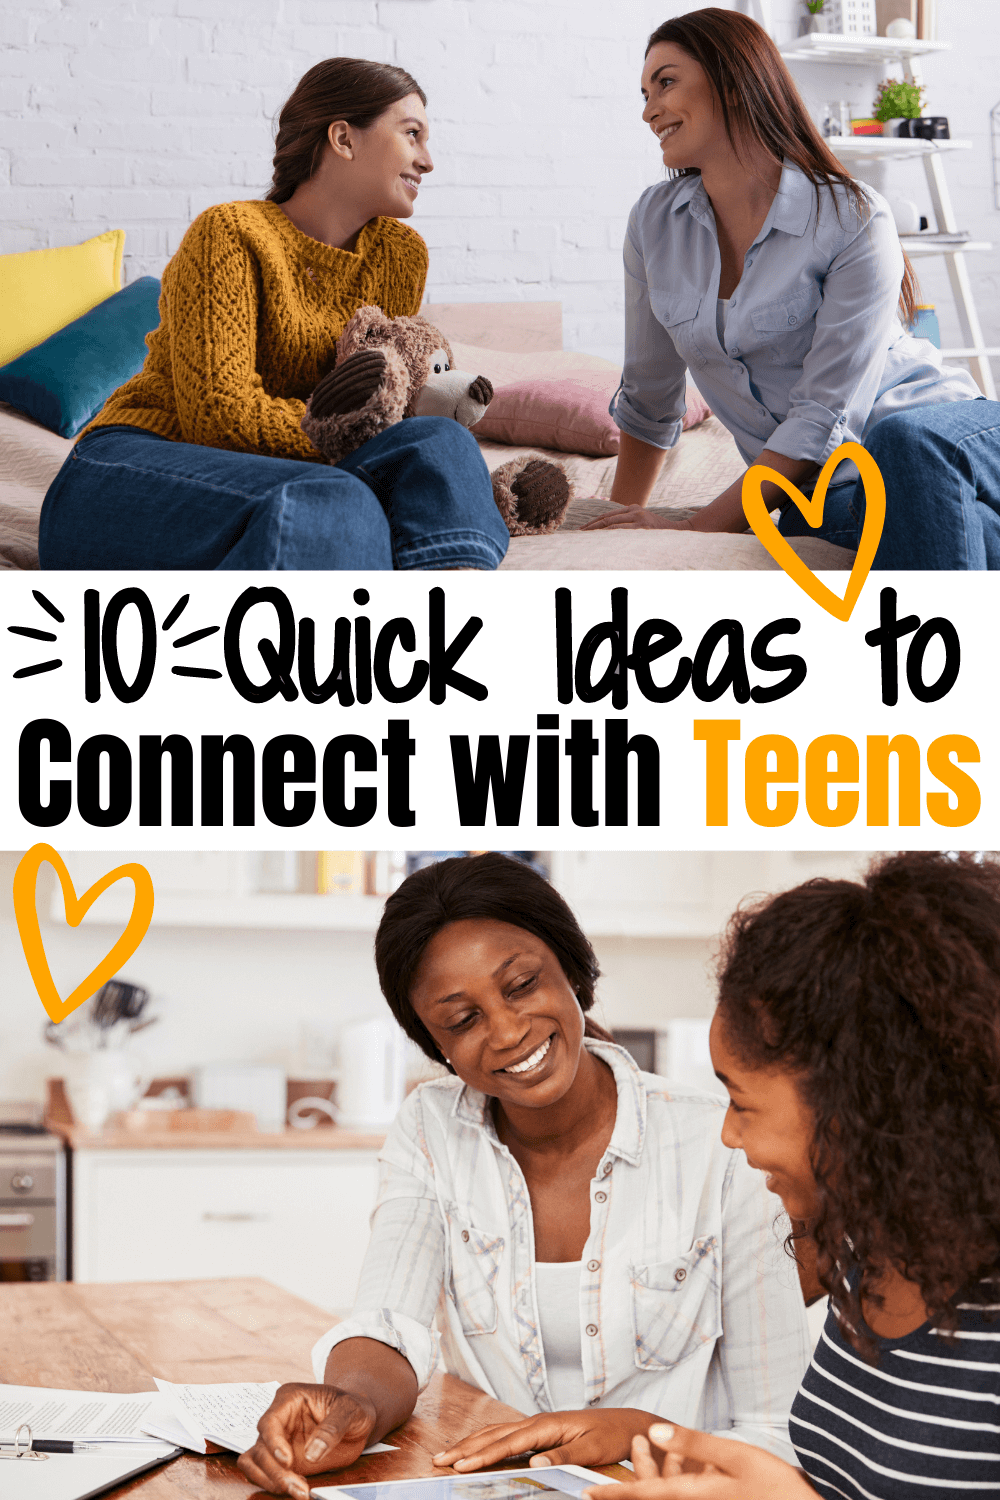 Use these 10 ideas to connect with teens to prove to them they are loved, safe and a welcome part of your family. Teenagers can be hard to undertand. These ideas will help you connect with them in meaningful ways.